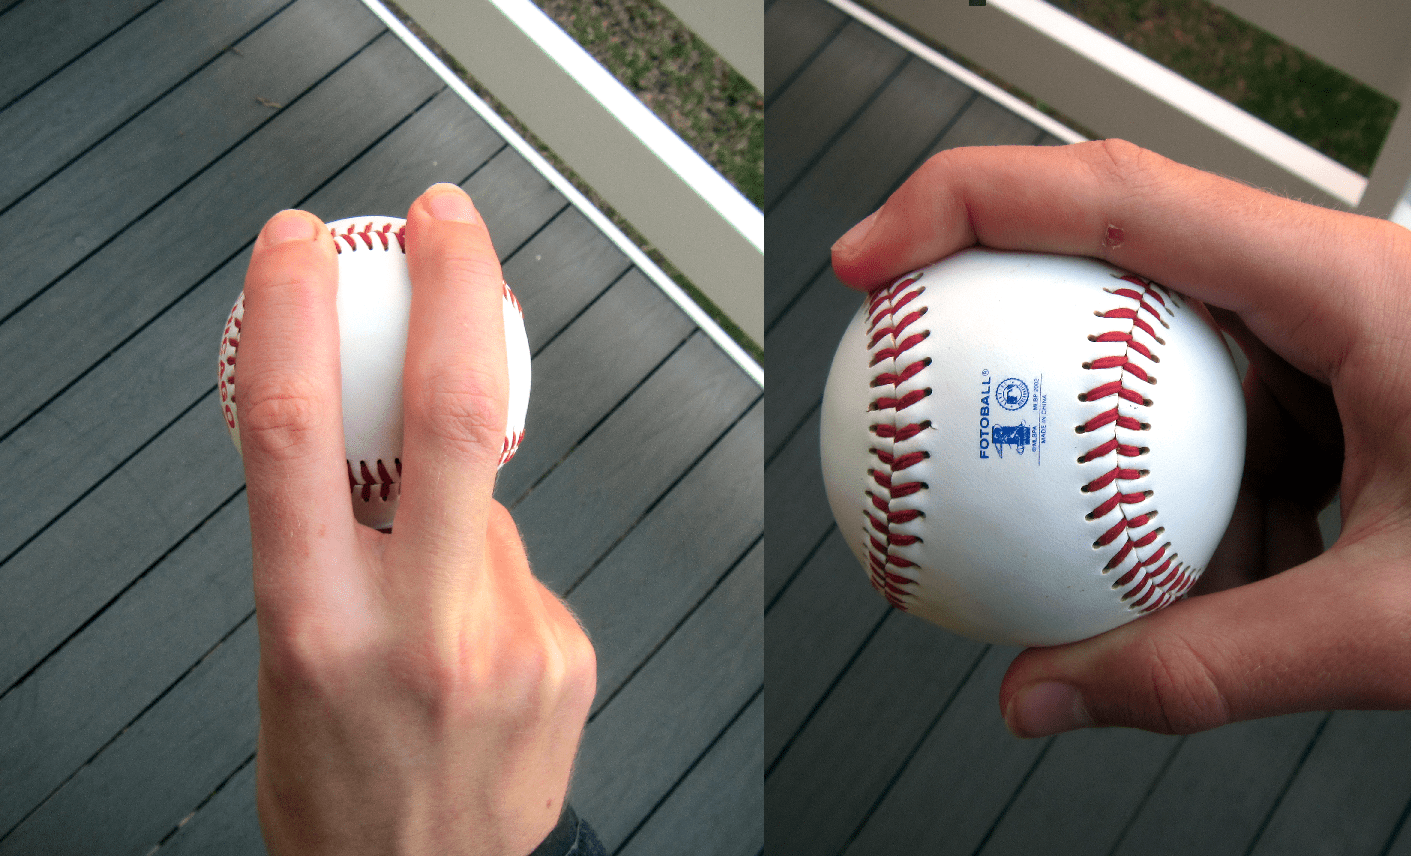 How To Throw A Fastball In Baseball